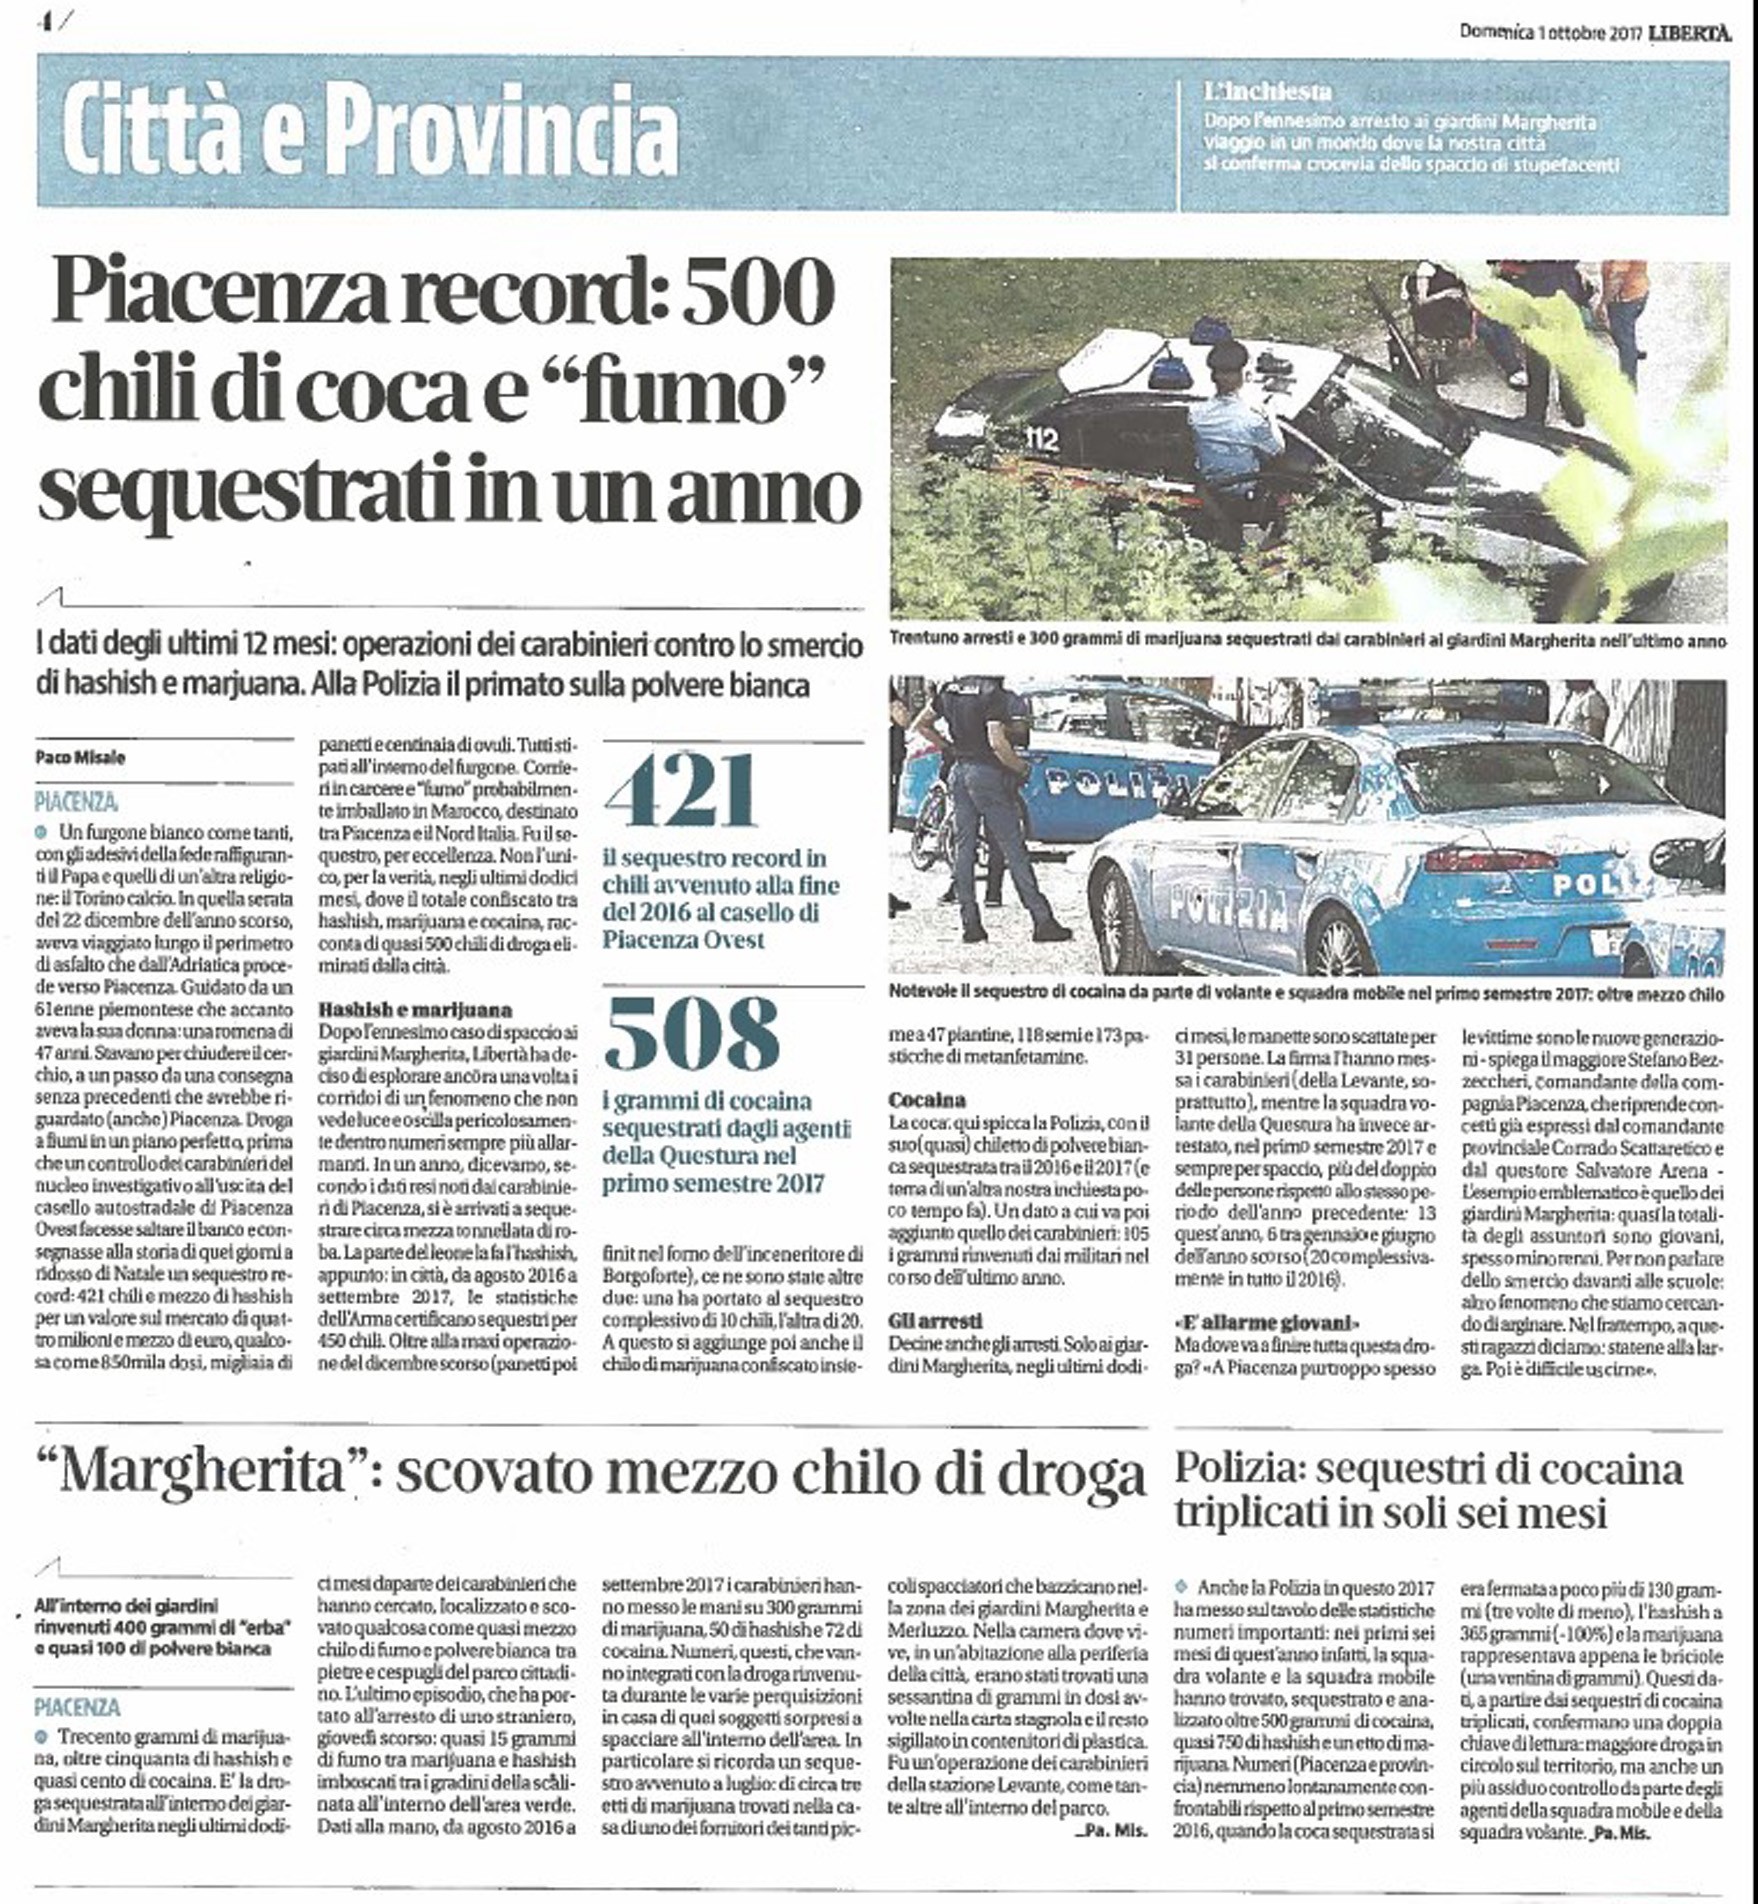 """Piacenza record: 500 chili di coca e ""fumo"" sequestrati in un anno"""